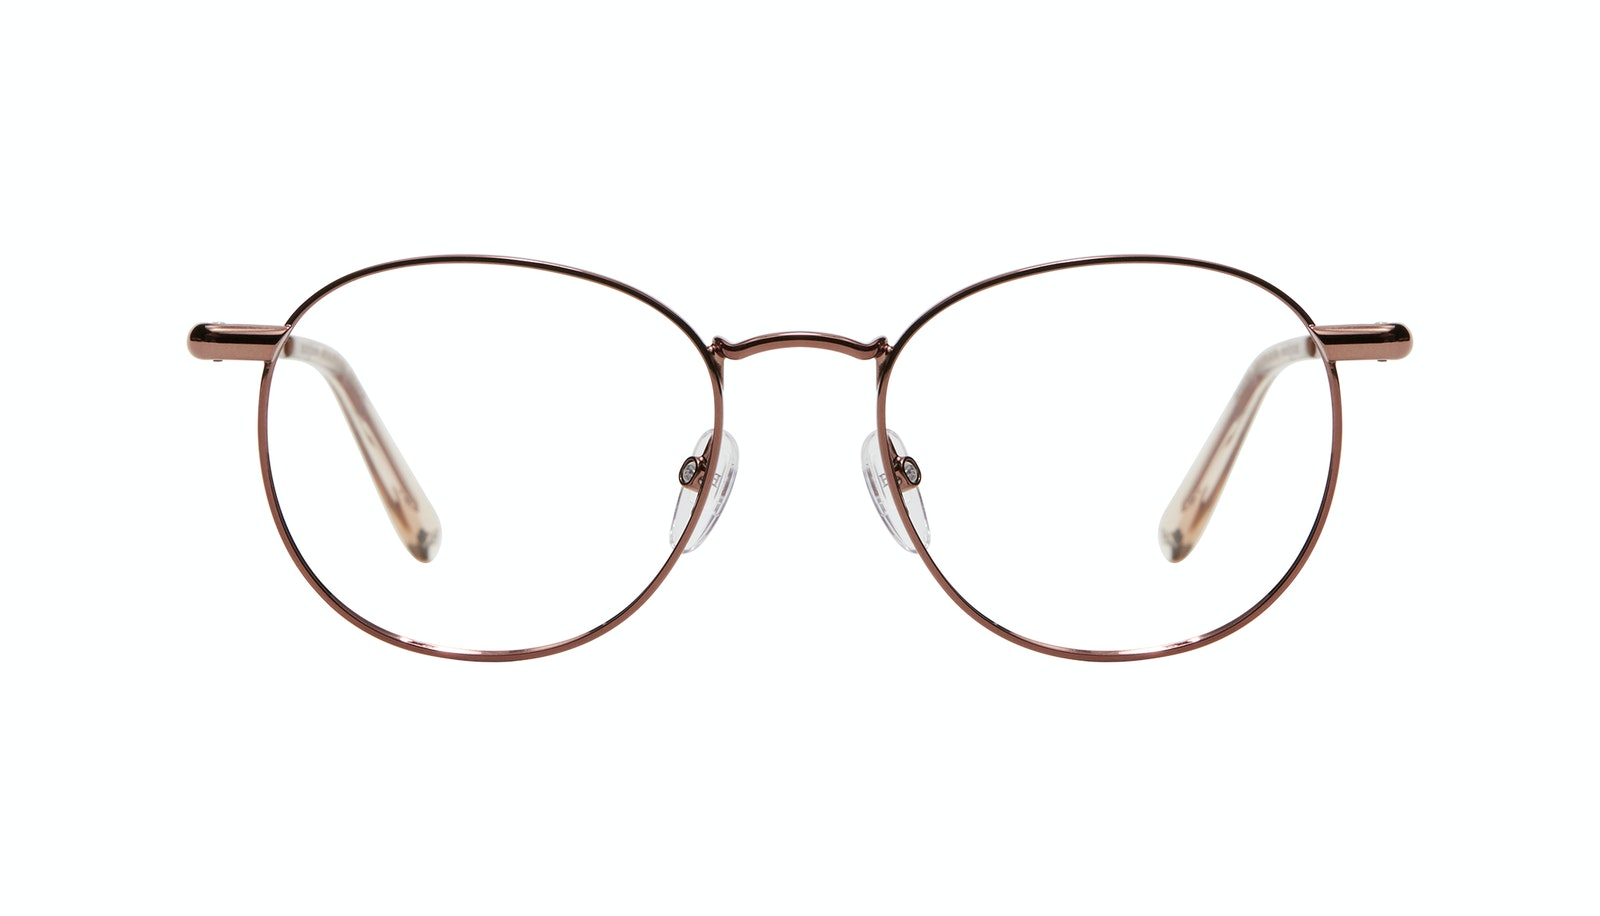 Affordable Fashion Glasses Round Eyeglasses Women Divine M Copper